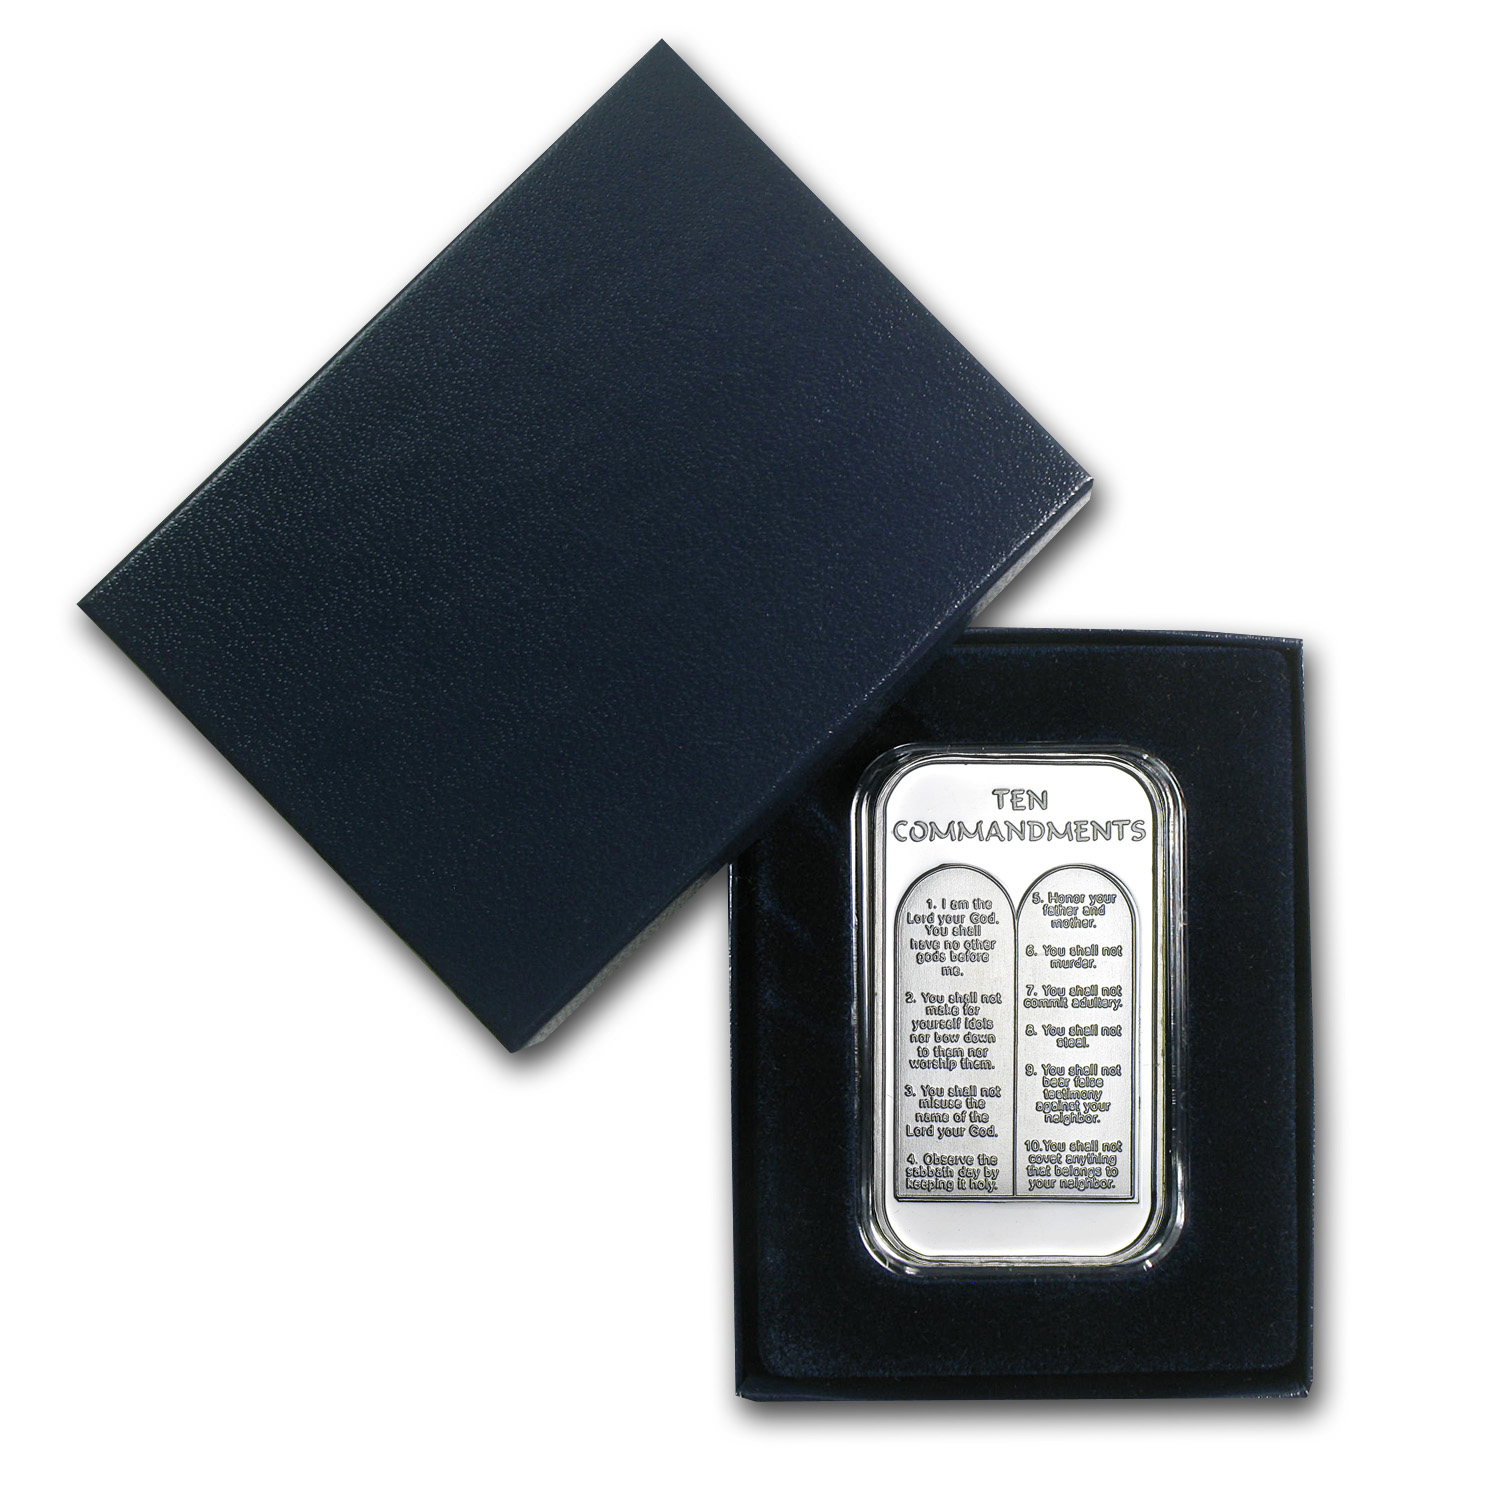 1 oz Silver Bar - Ten Commandments (w/Box & Capsule)